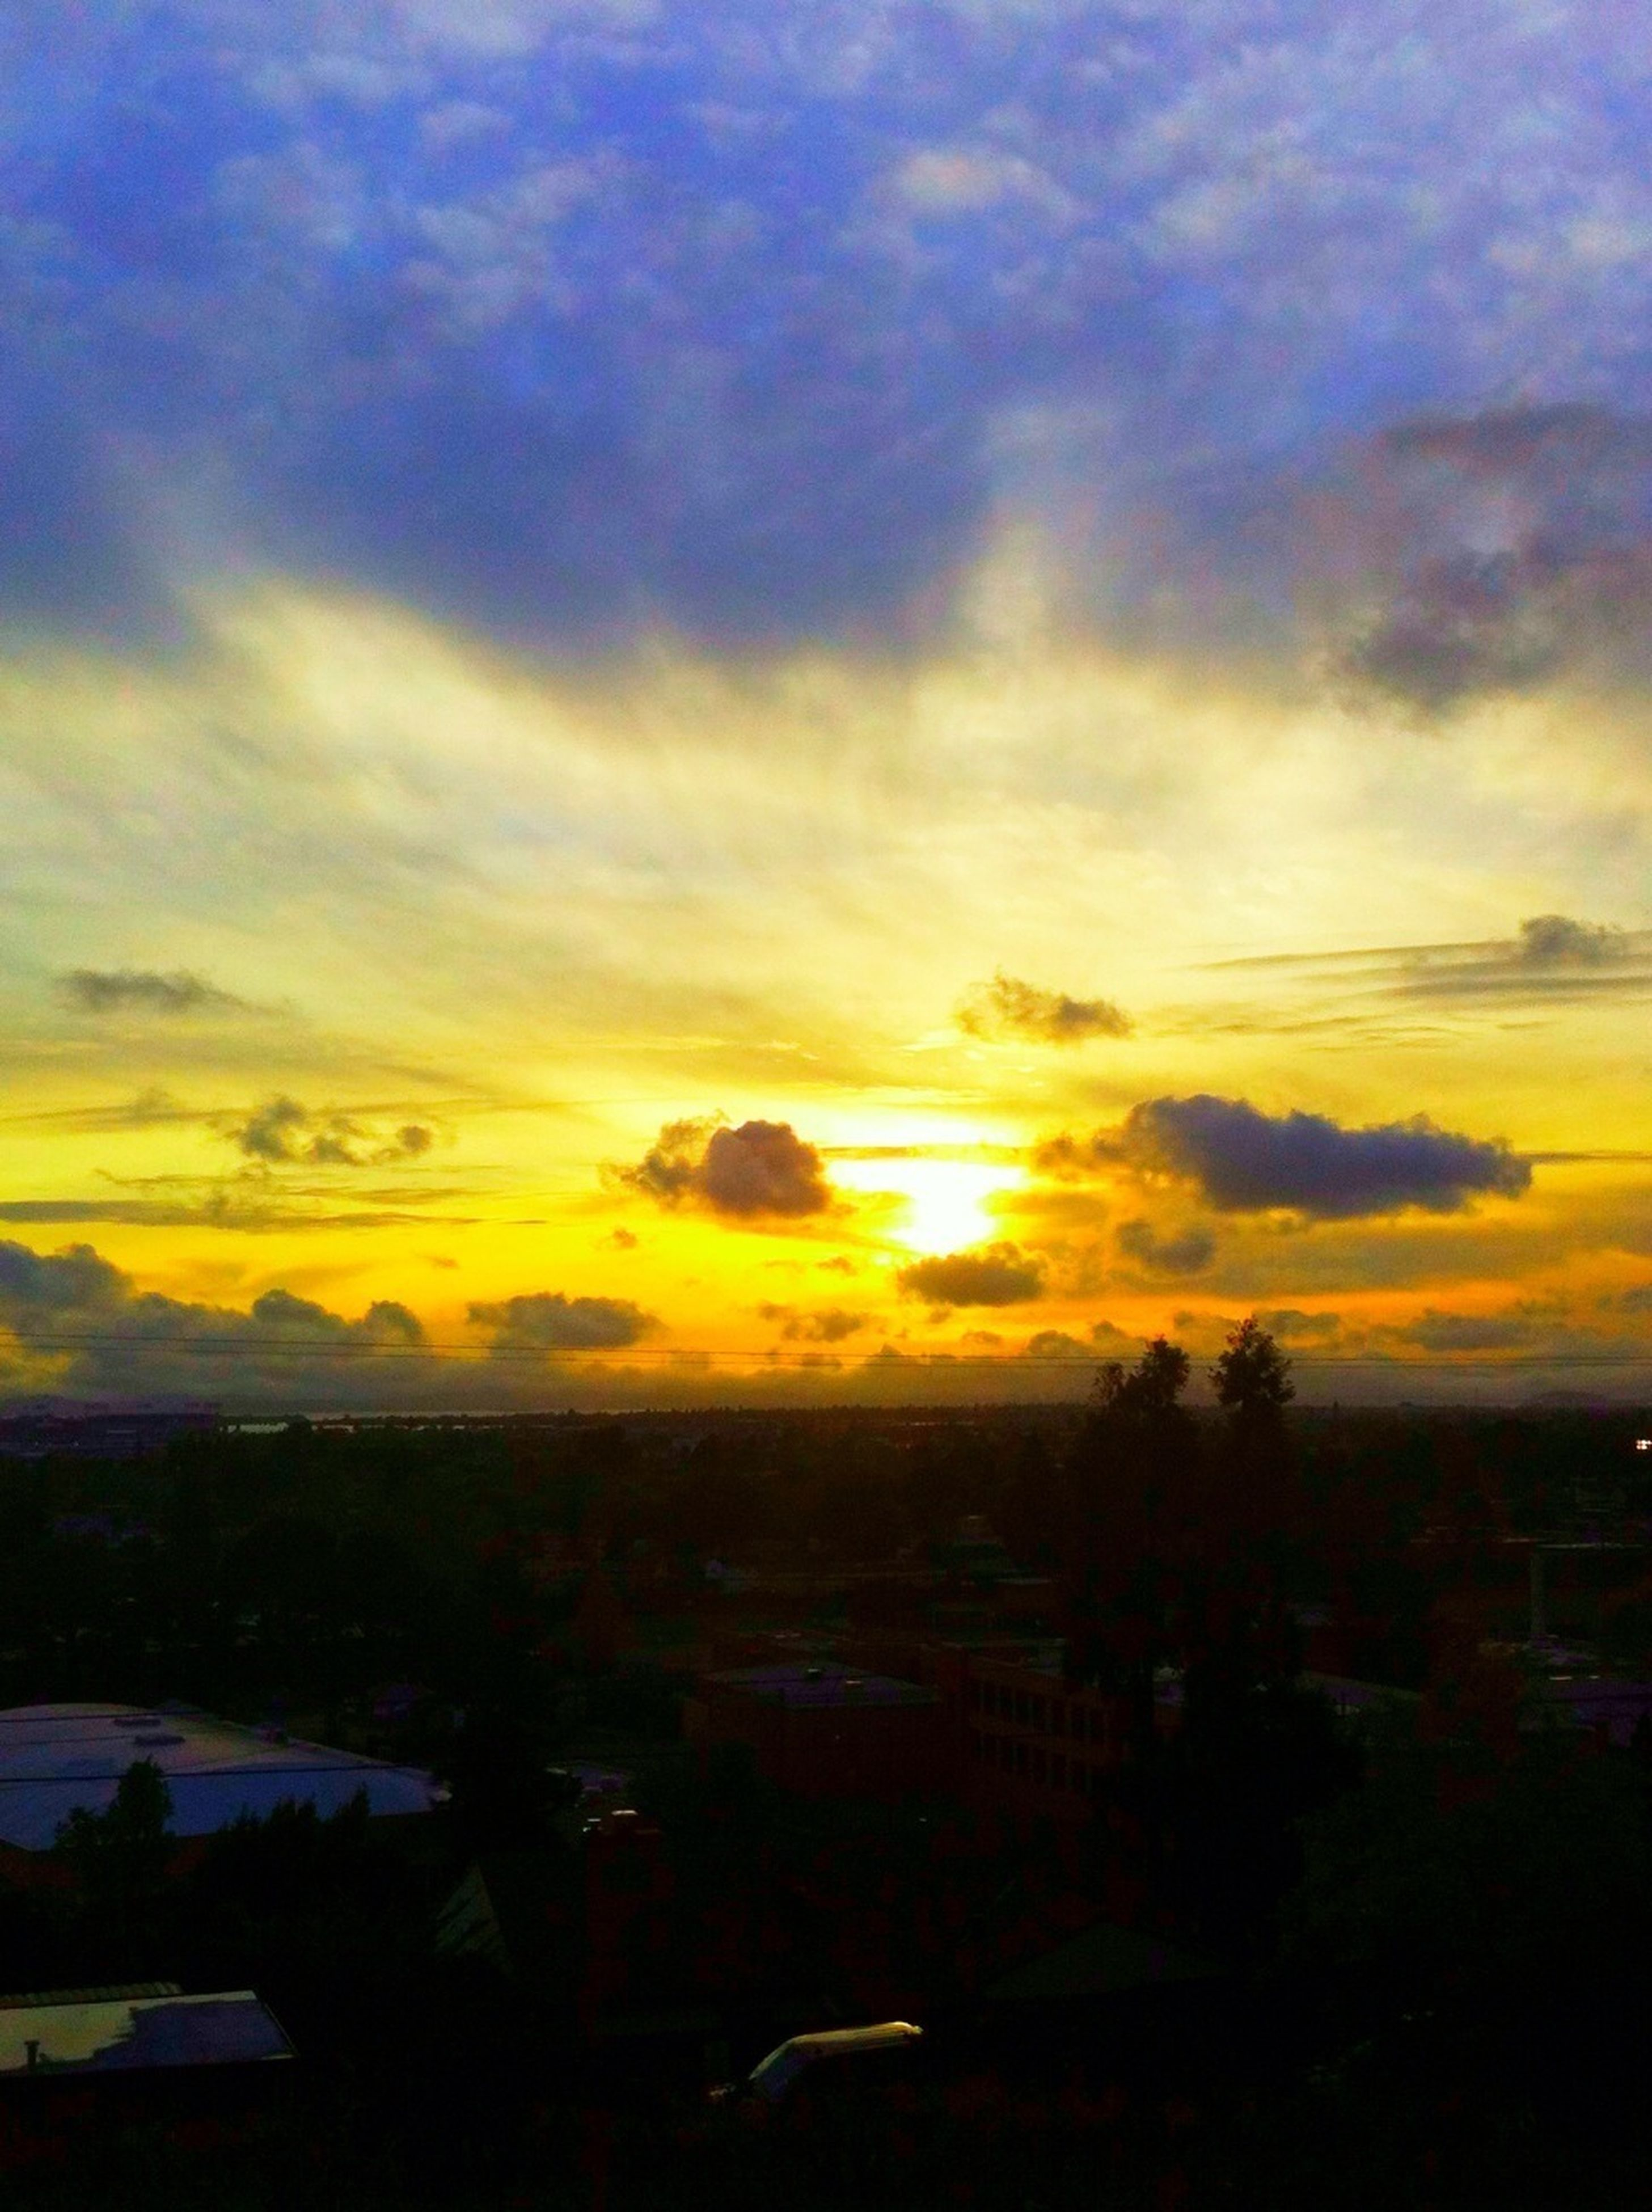 sunset, sky, orange color, scenics, cloud - sky, beauty in nature, landscape, tranquil scene, tranquility, cityscape, nature, dramatic sky, idyllic, city, cloud, cloudy, high angle view, building exterior, silhouette, sun